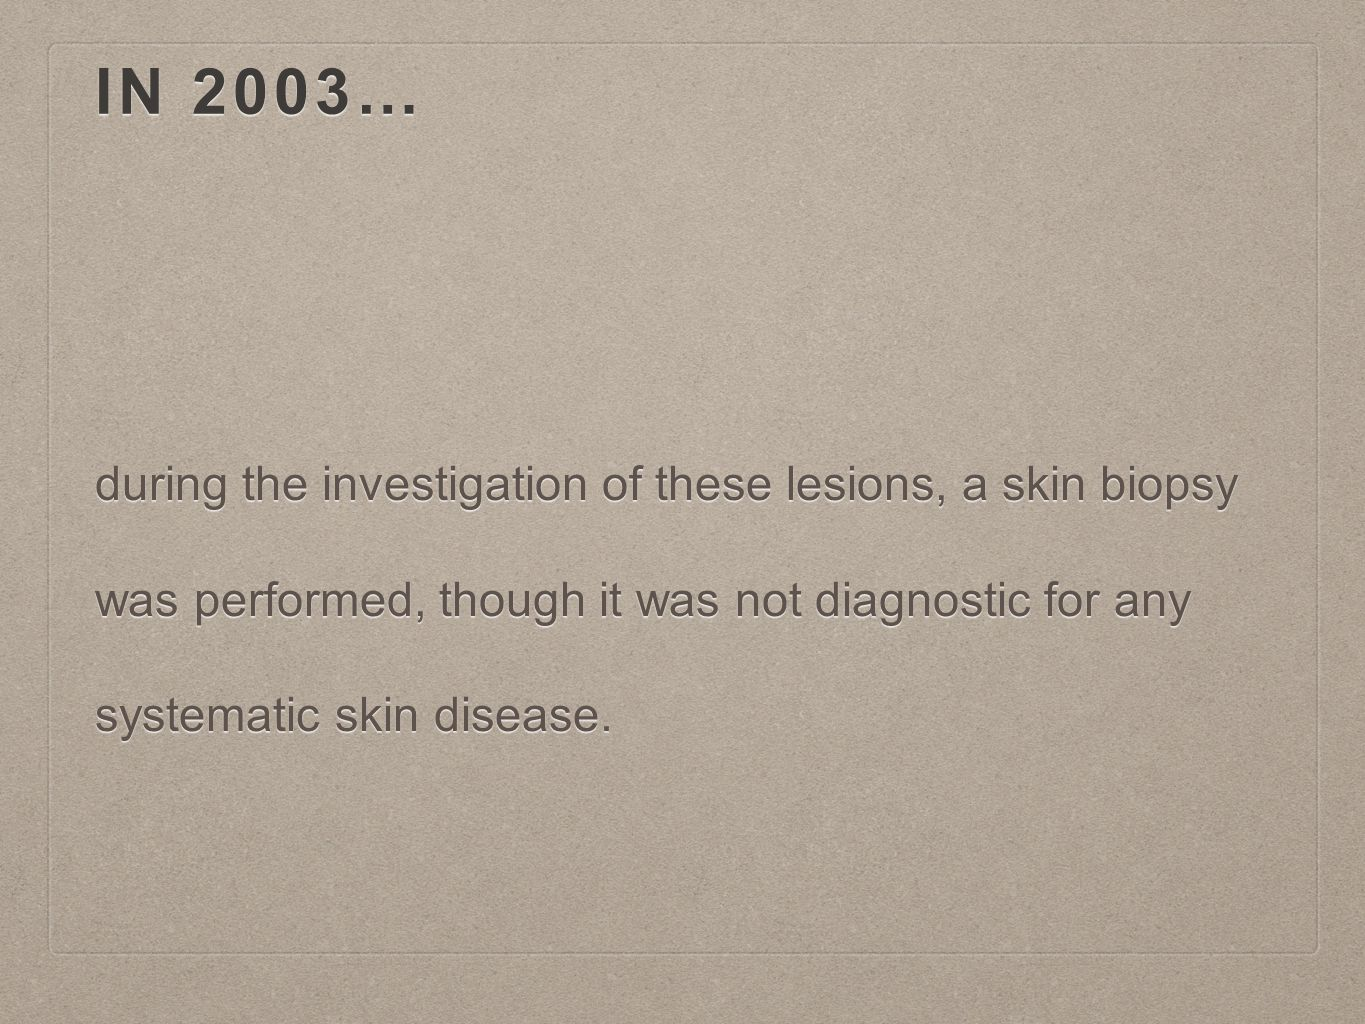 IN 2003… during the investigation of these lesions, a skin biopsy was performed, though it was not diagnostic for any systematic skin disease.